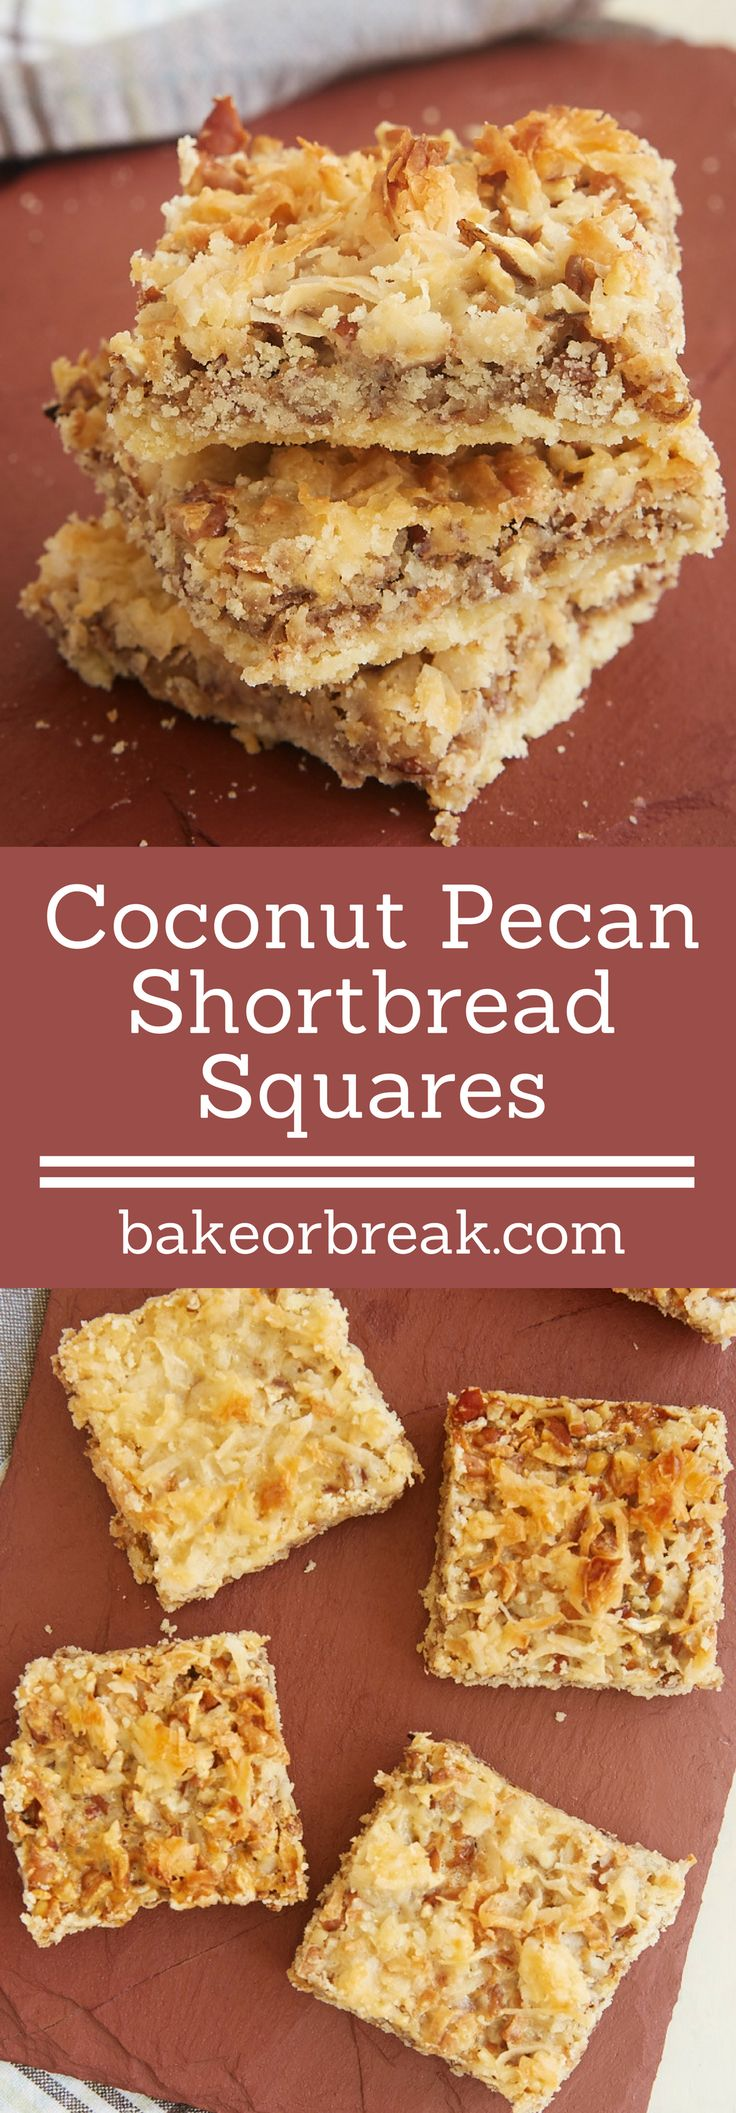 Best 20+ Coconut candy ideas on Pinterest | Coconut ...